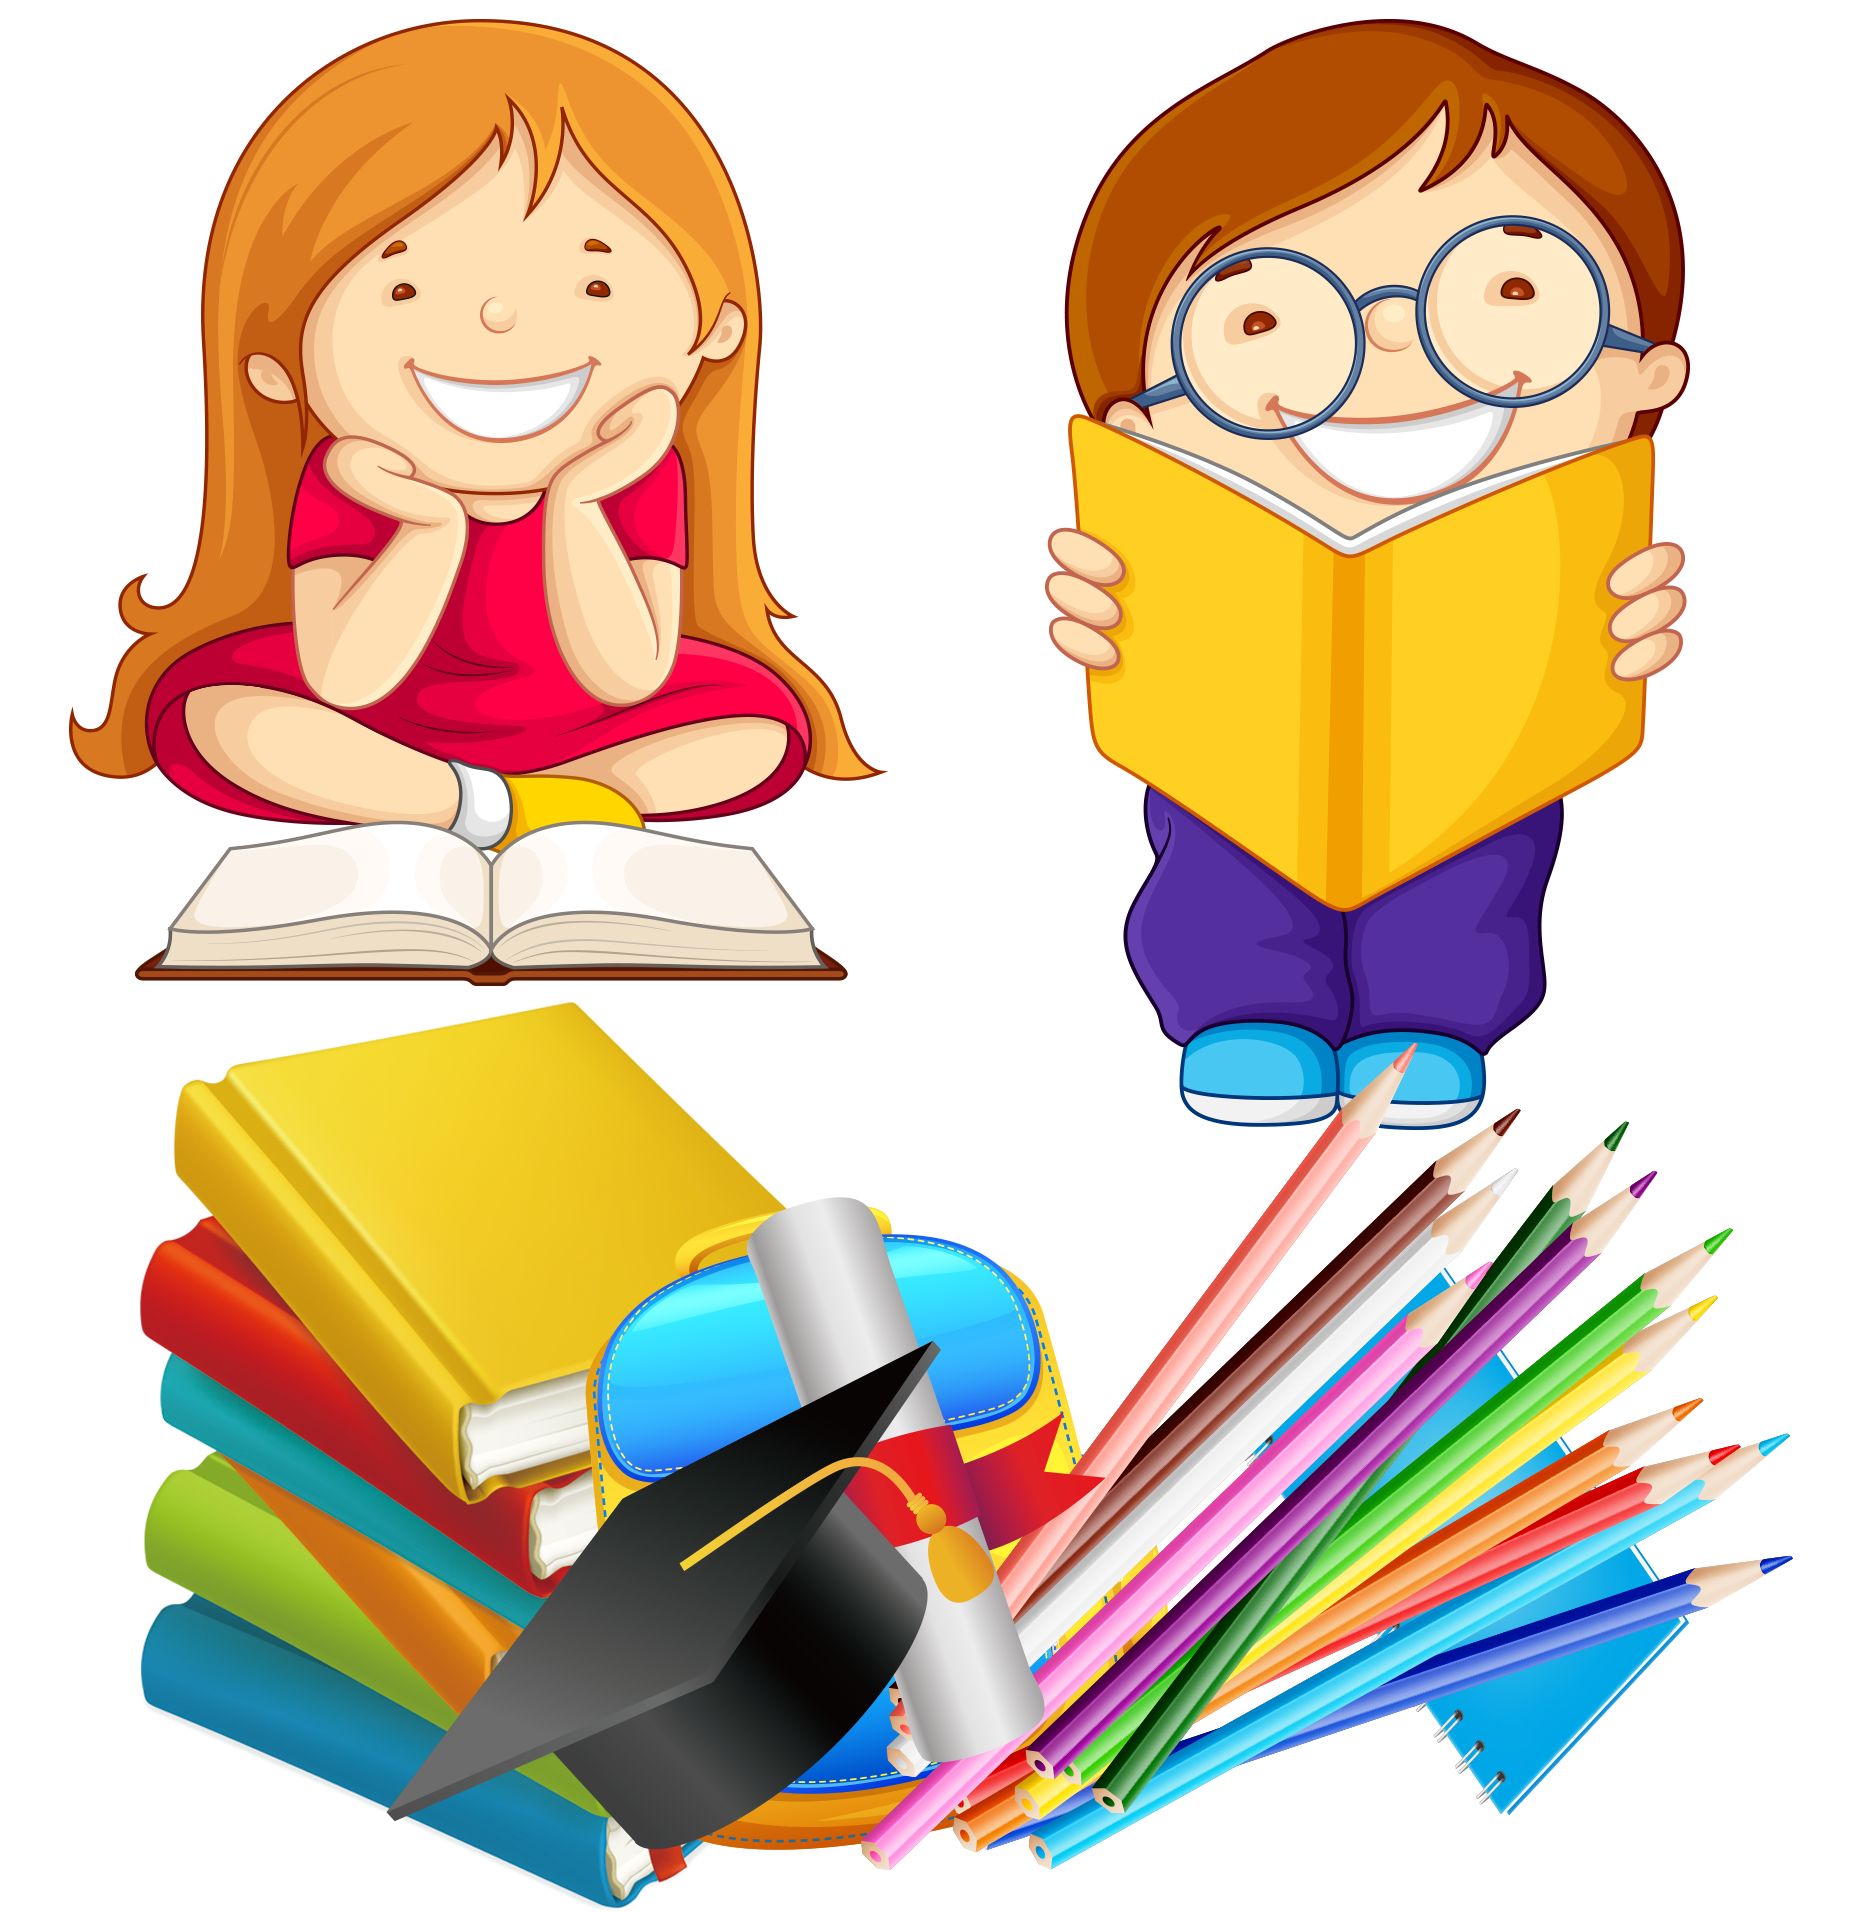 Child reading book clipart image free stock Child Reading Book - Pencil bag 1855*1912 transprent Png Free ... image free stock